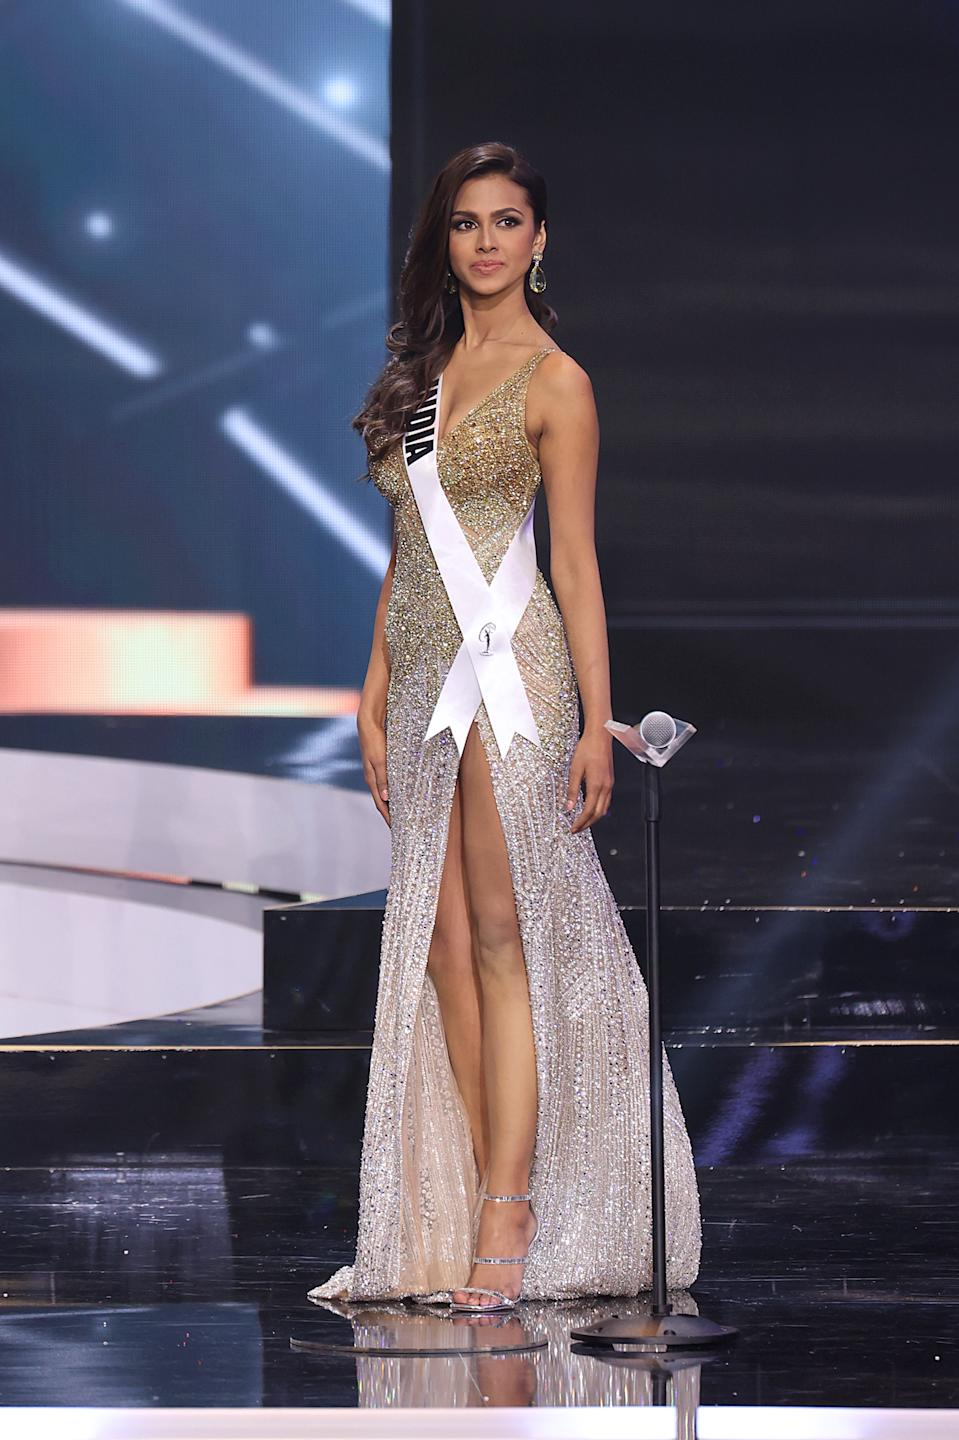 HOLLYWOOD, FLORIDA - MAY 16: Miss Universe India Adline Castelino appears onstage at the Miss Universe 2021 Pageant at Seminole Hard Rock Hotel & Casino on May 16, 2021 in Hollywood, Florida. (Photo by Rodrigo Varela/Getty Images)